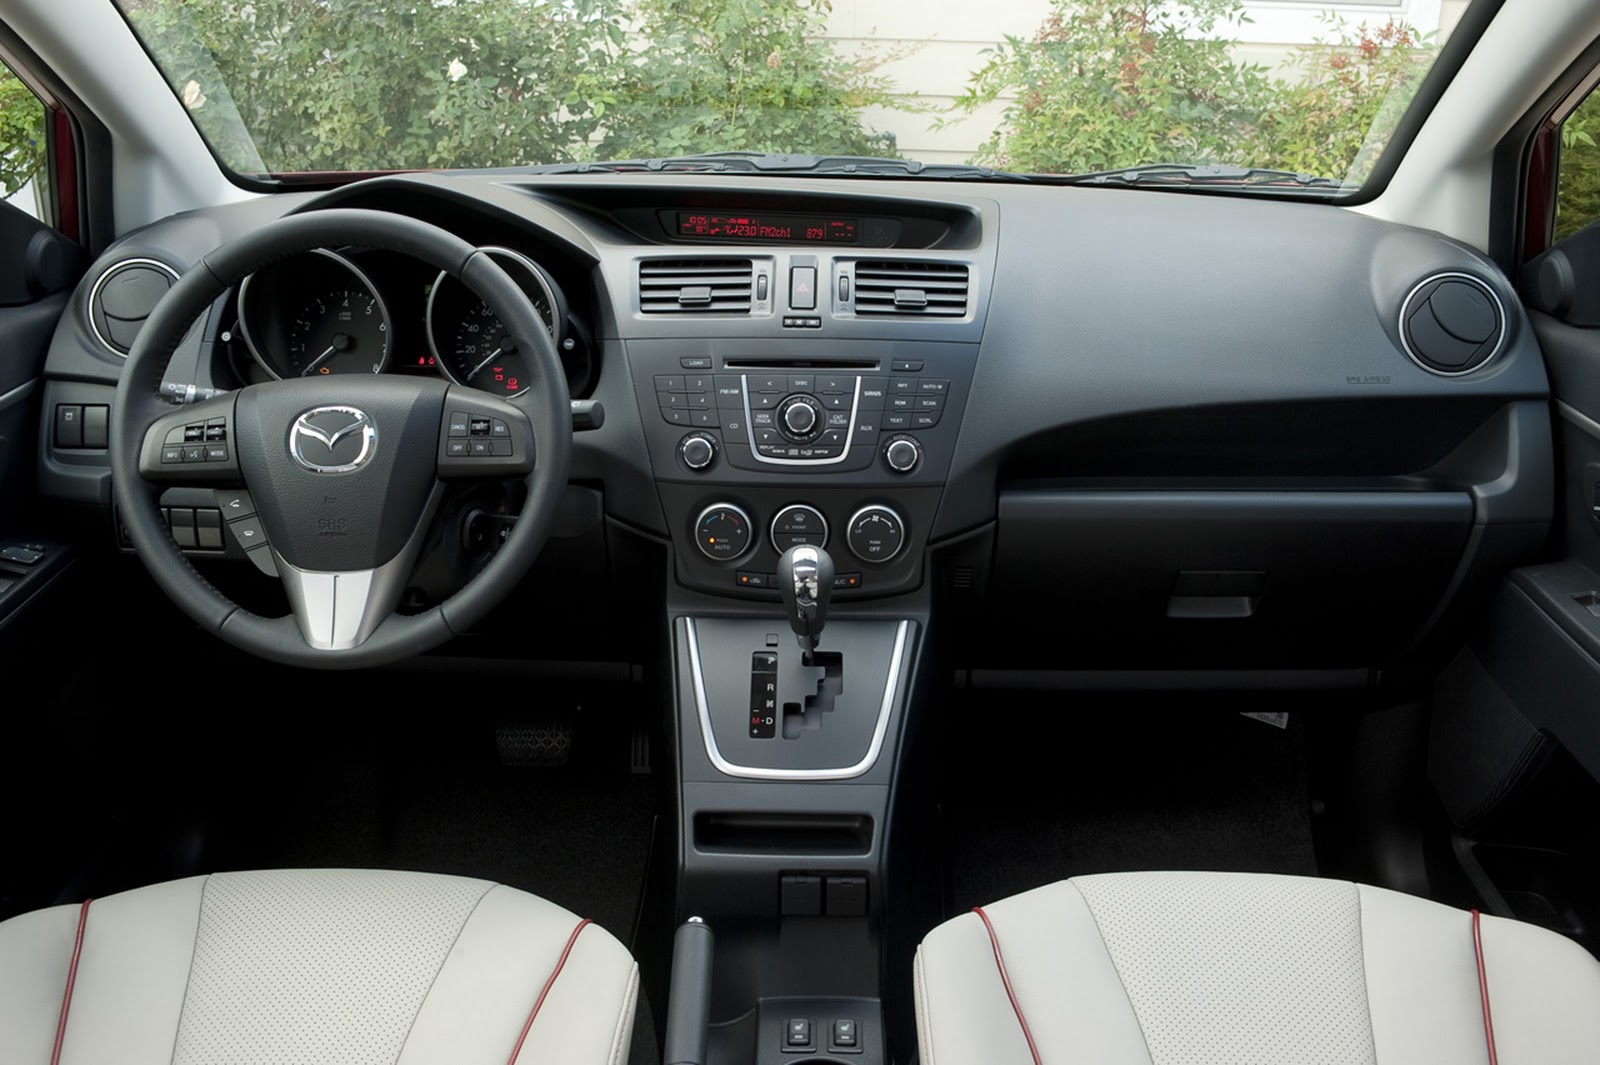 2012 mazda 5 interior photos reviews specifications